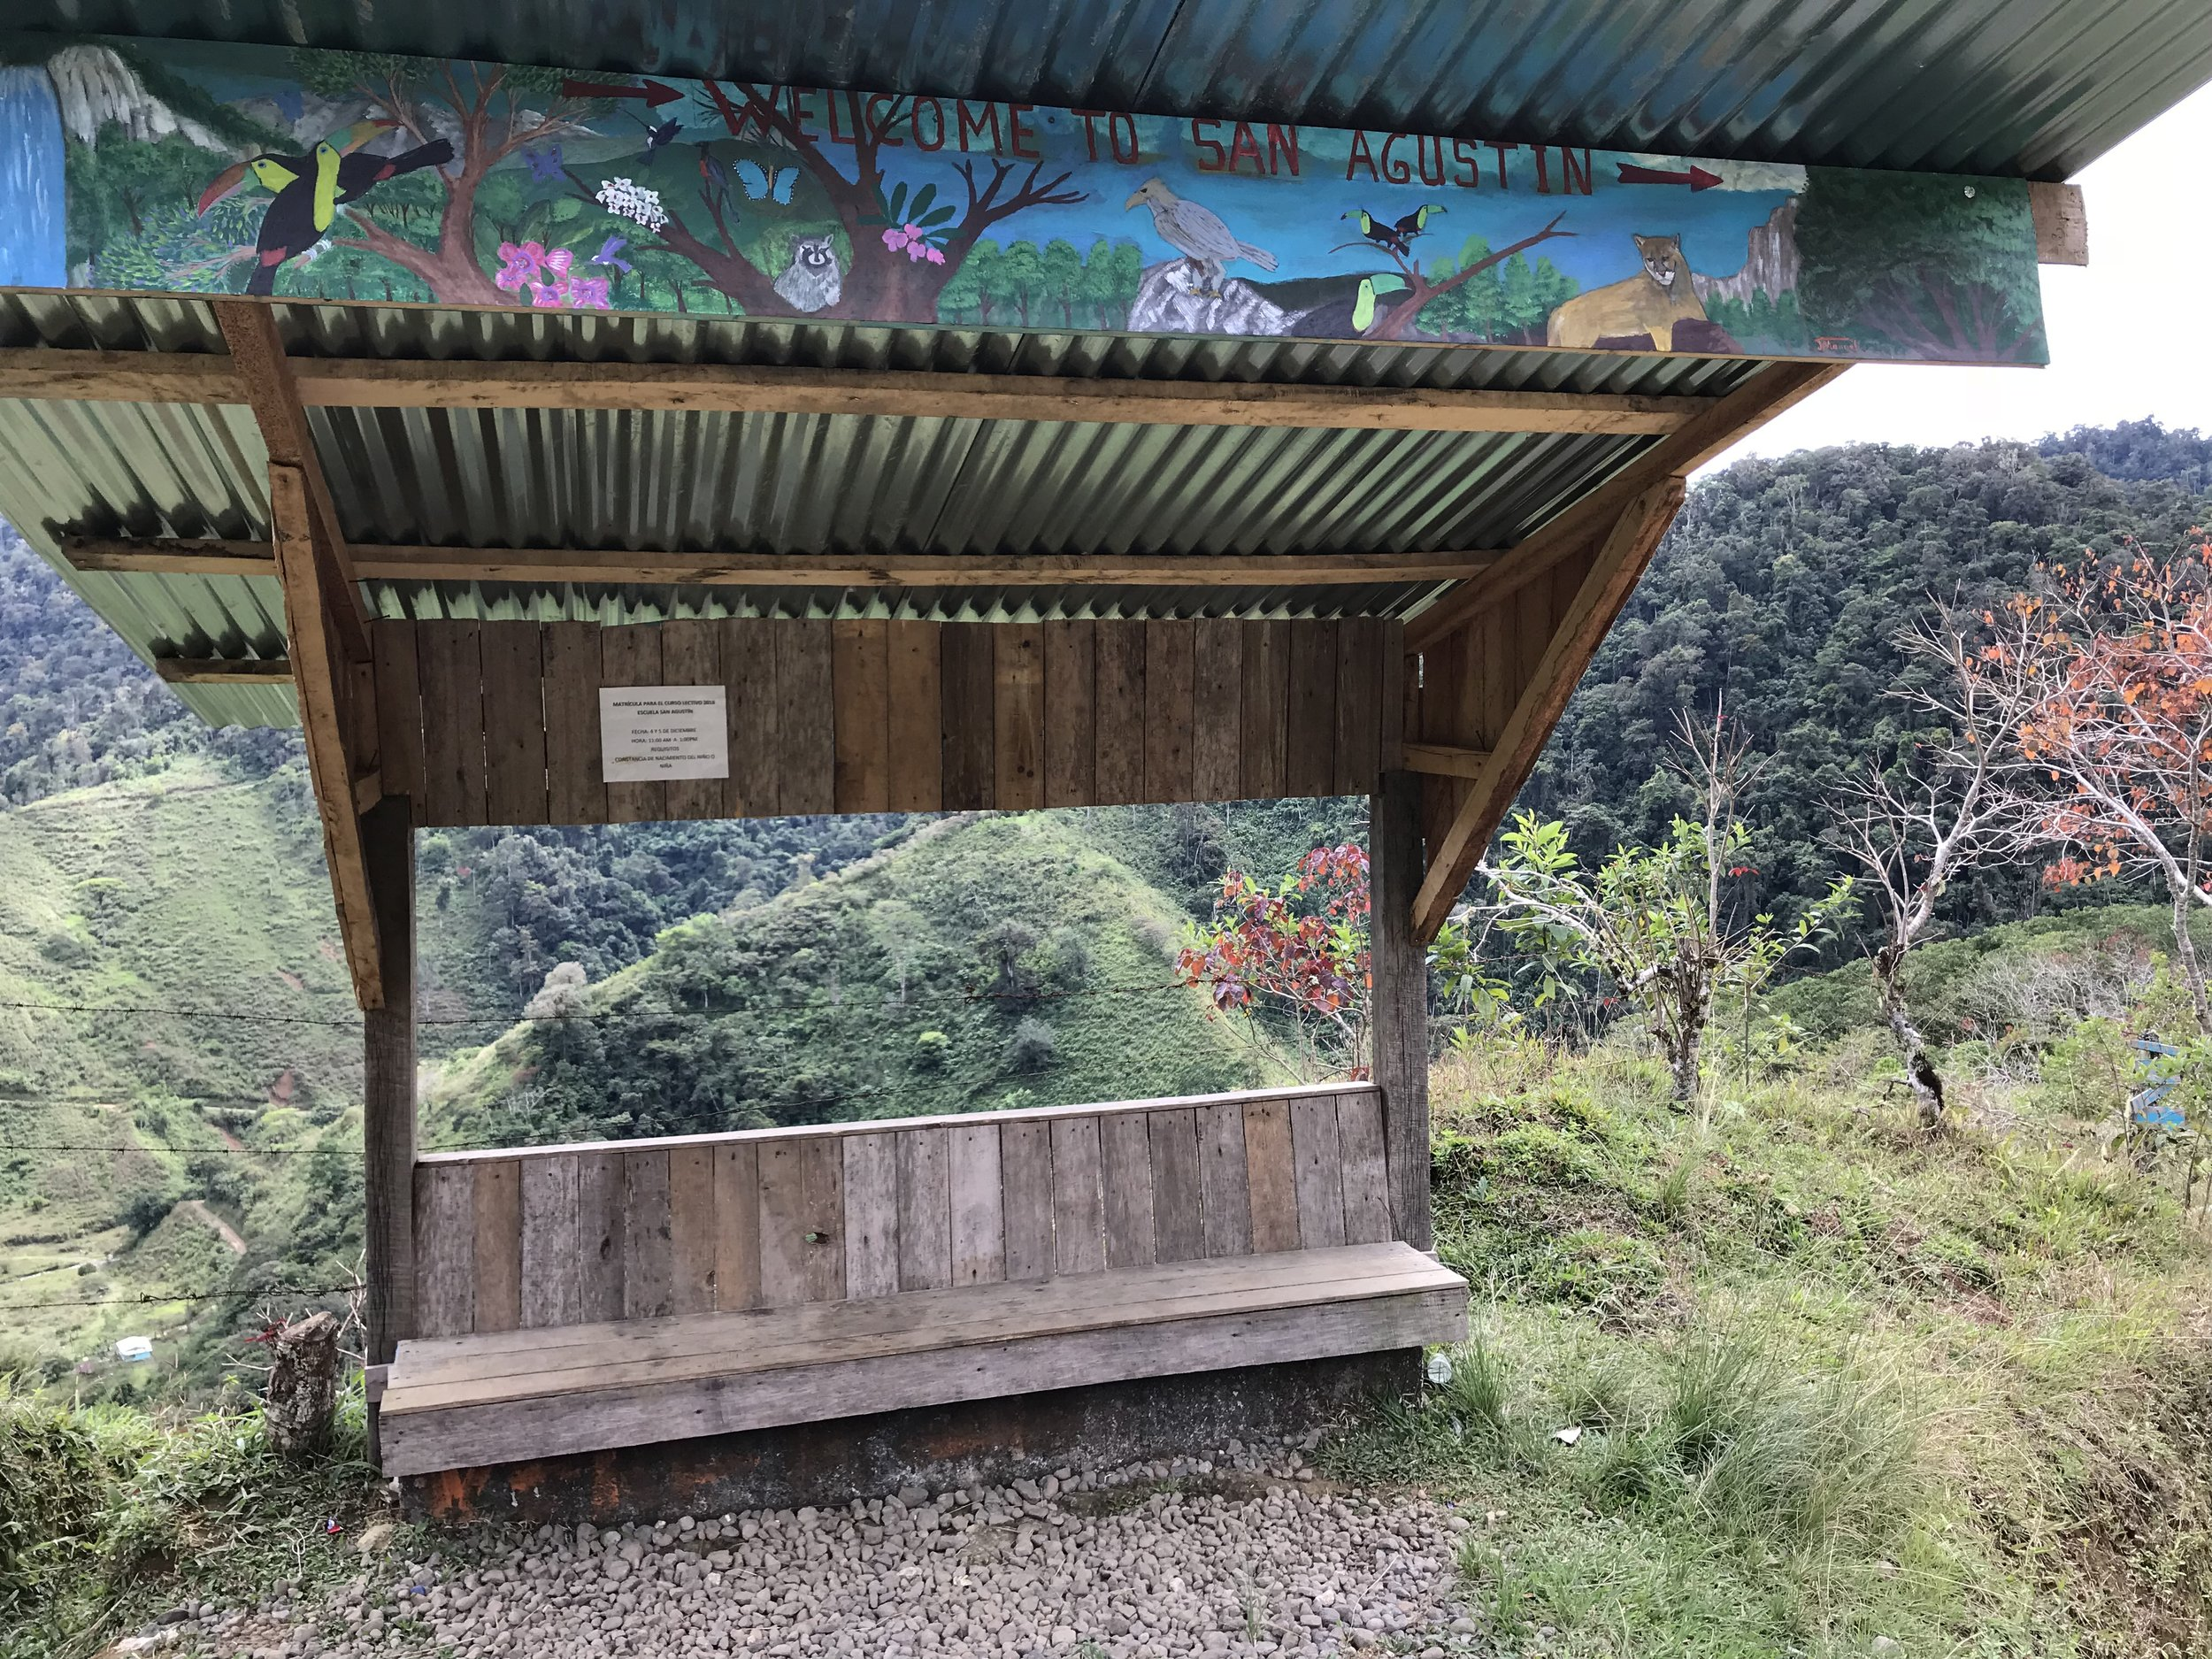 The Bus Shelter at La Cruse. Turn Right And You Will Arrive In 2Km! From San Jose to Turrialba by car or bus takes about 3 hours.   From Turrialba to Camping Vereh takes about 1 hour and 15 minutes.